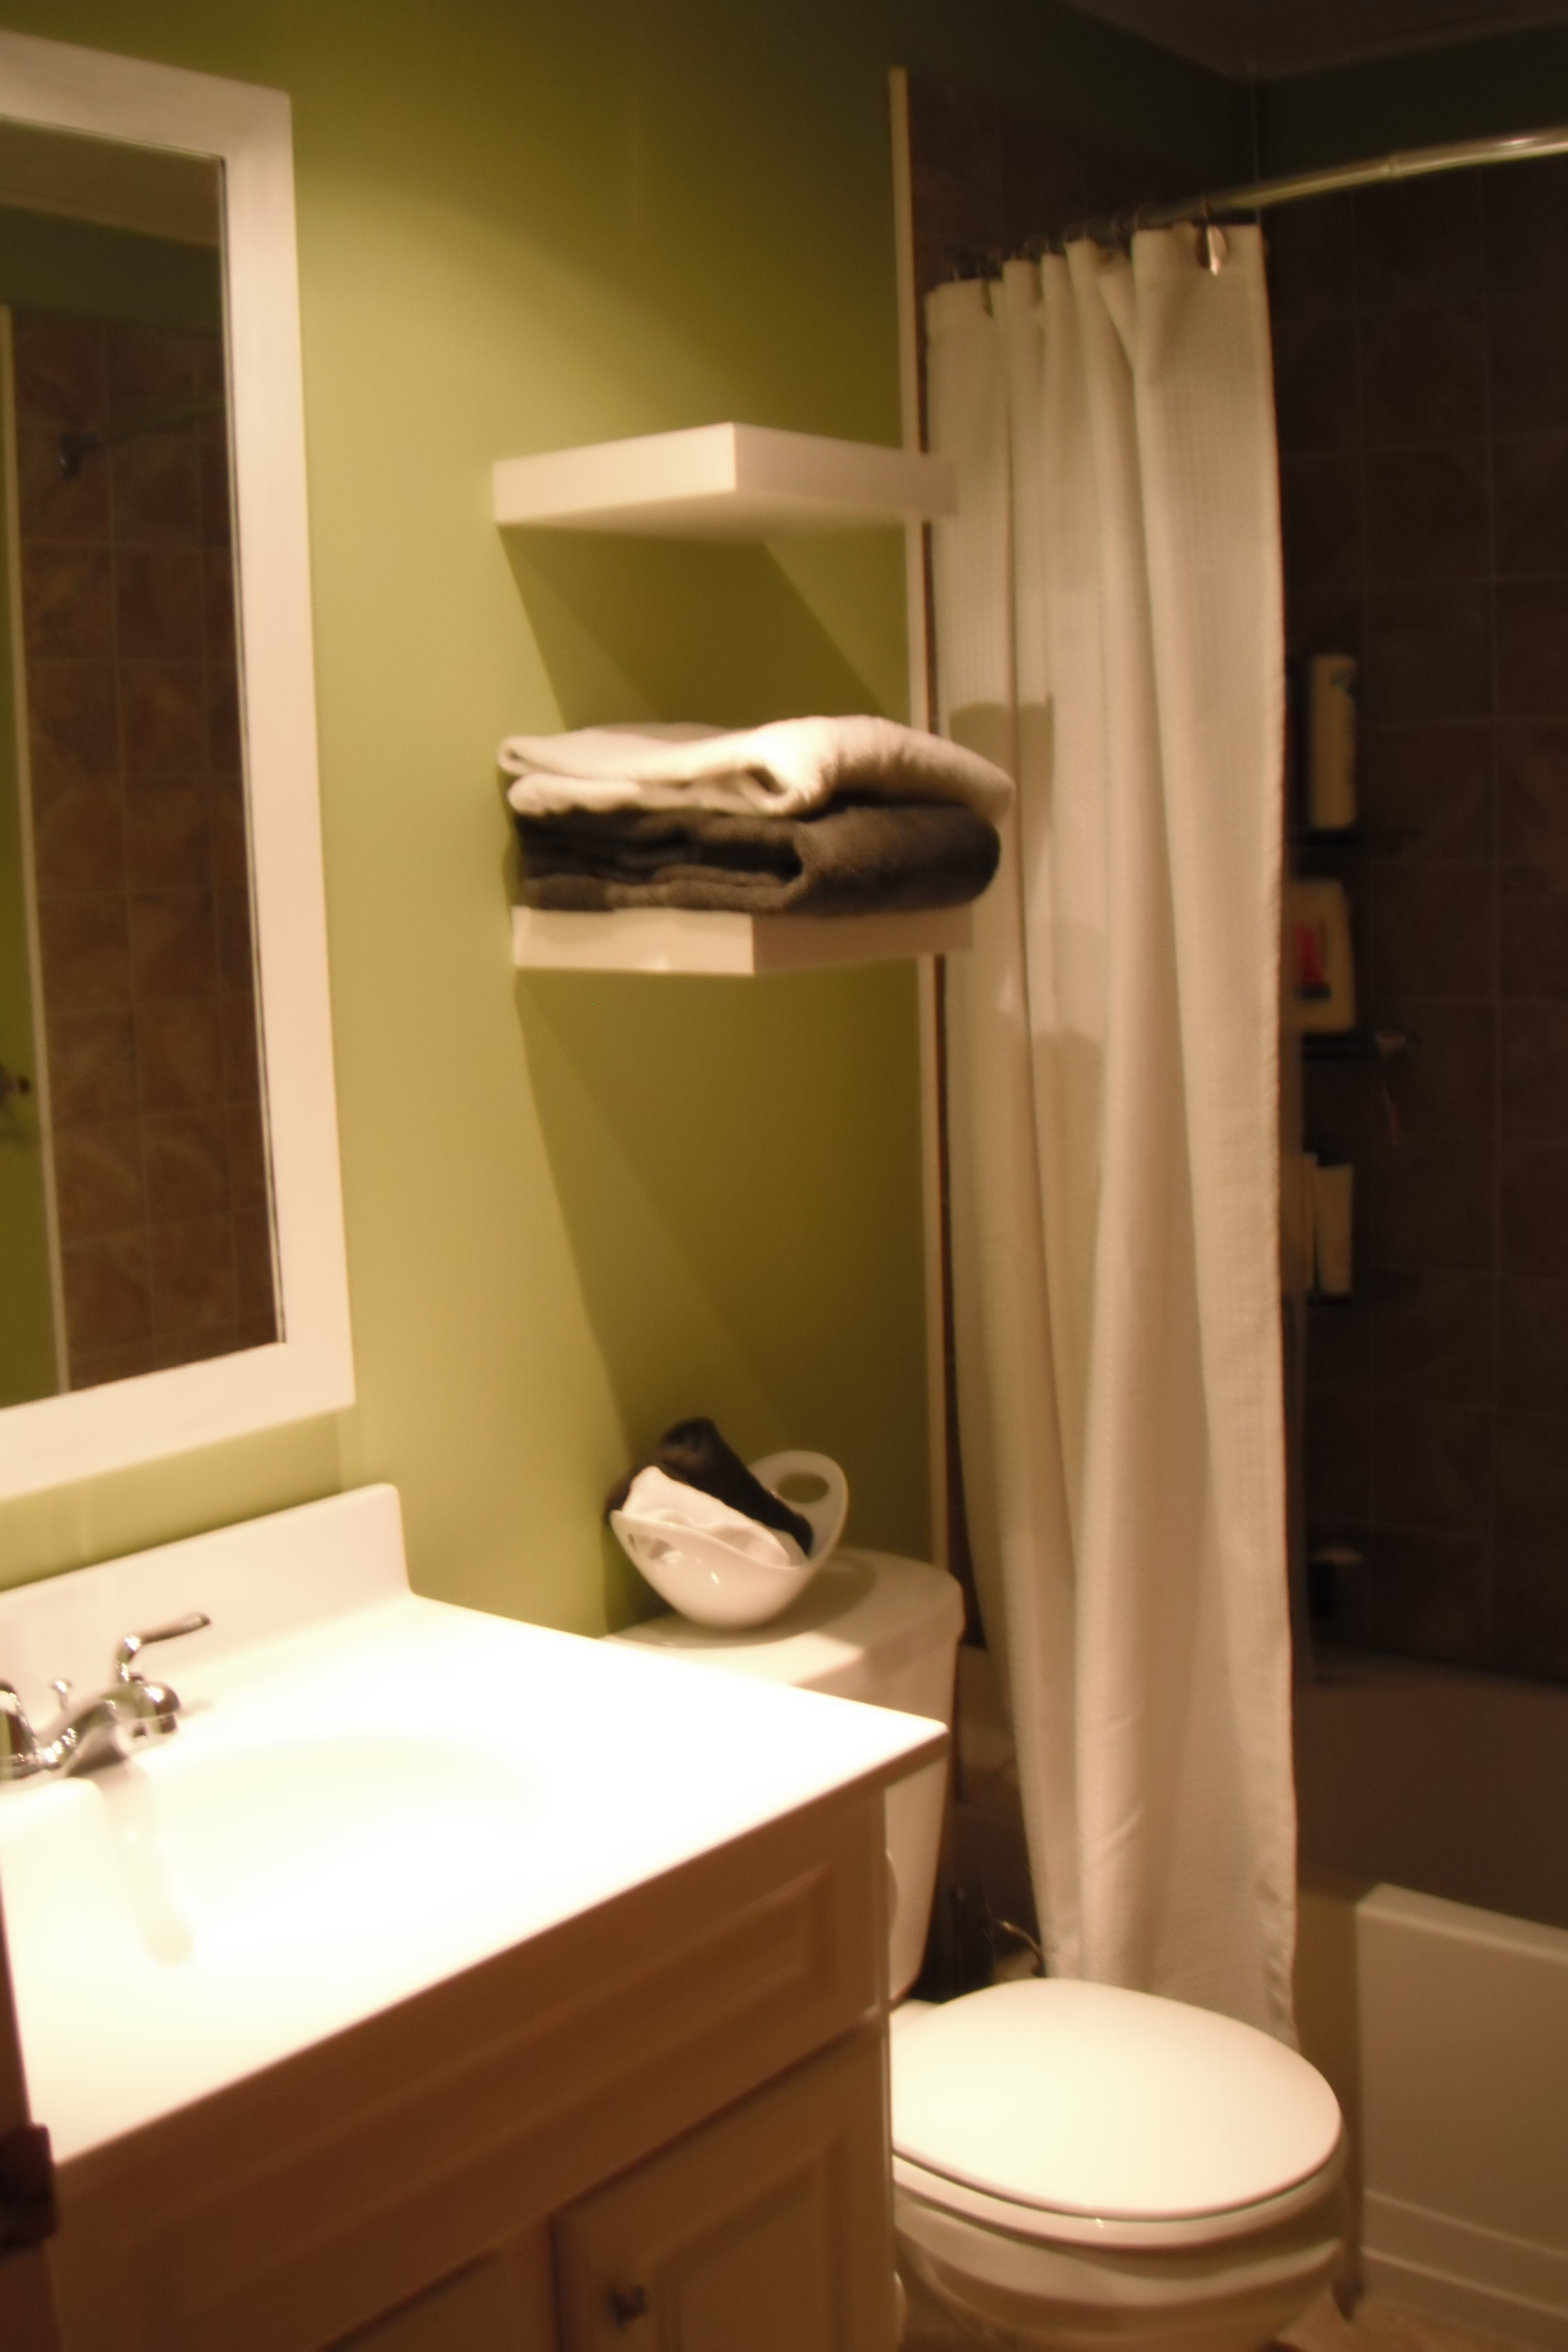 remodeling tn your rustic photos chattanooga diy best stepsbest to inspirations full marvelous remodel trends first steps homeadvisor size of bathroom